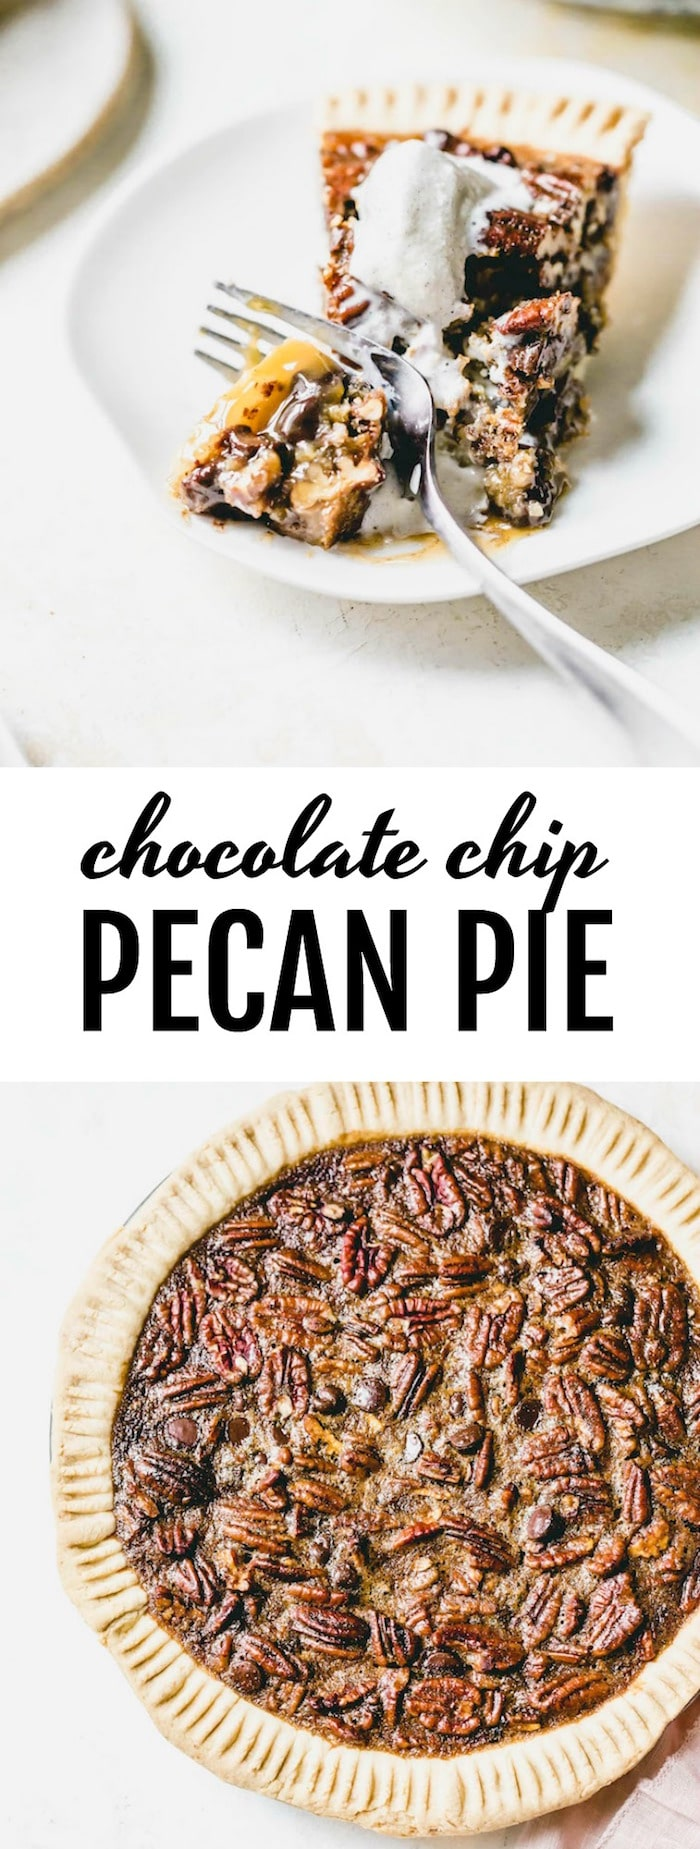 Chocolate Chip Pecan Pie - pecan pie filled with chocolate chips and made with honey instead of corn syrup!   thealmondeater.com